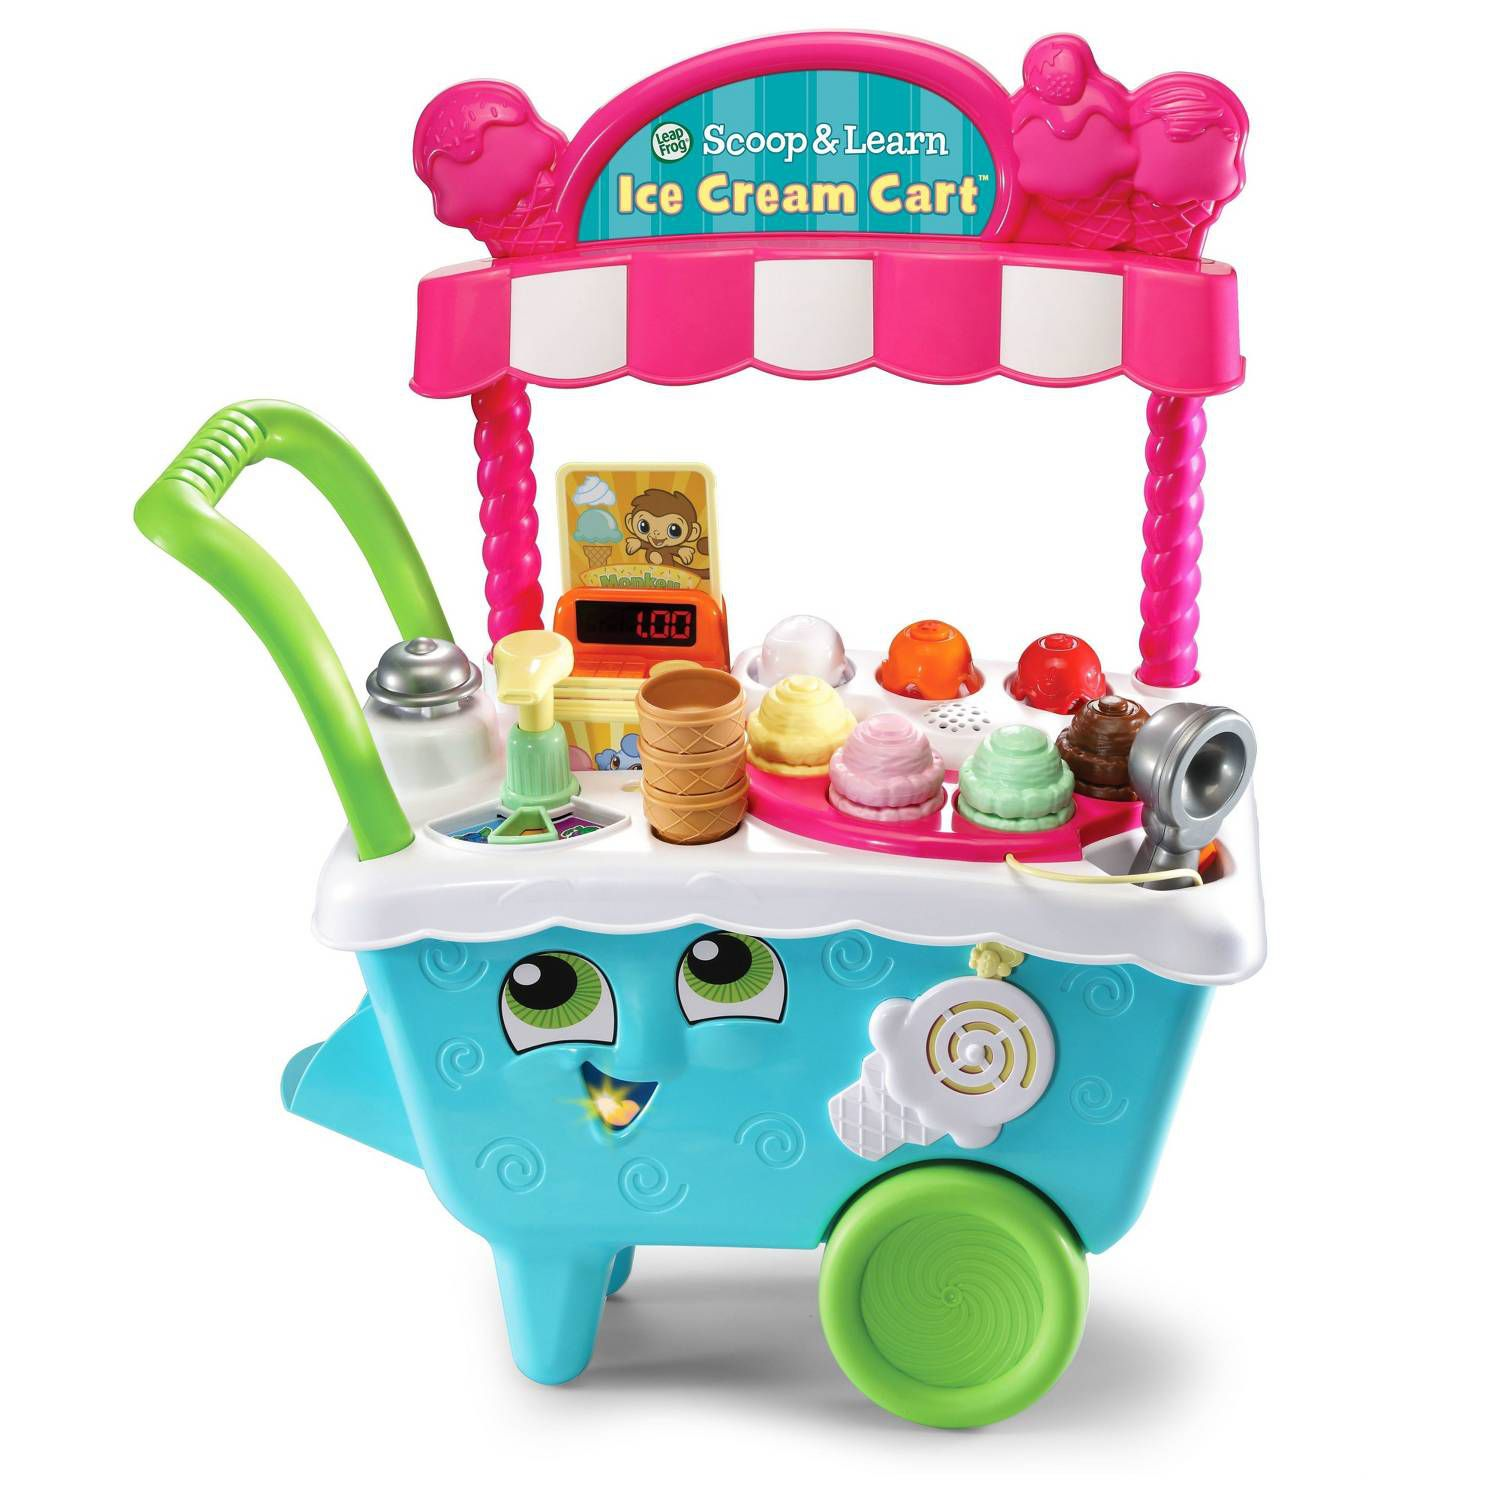 The 9 Best Toys to Buy for 4 Year Olds in 2019